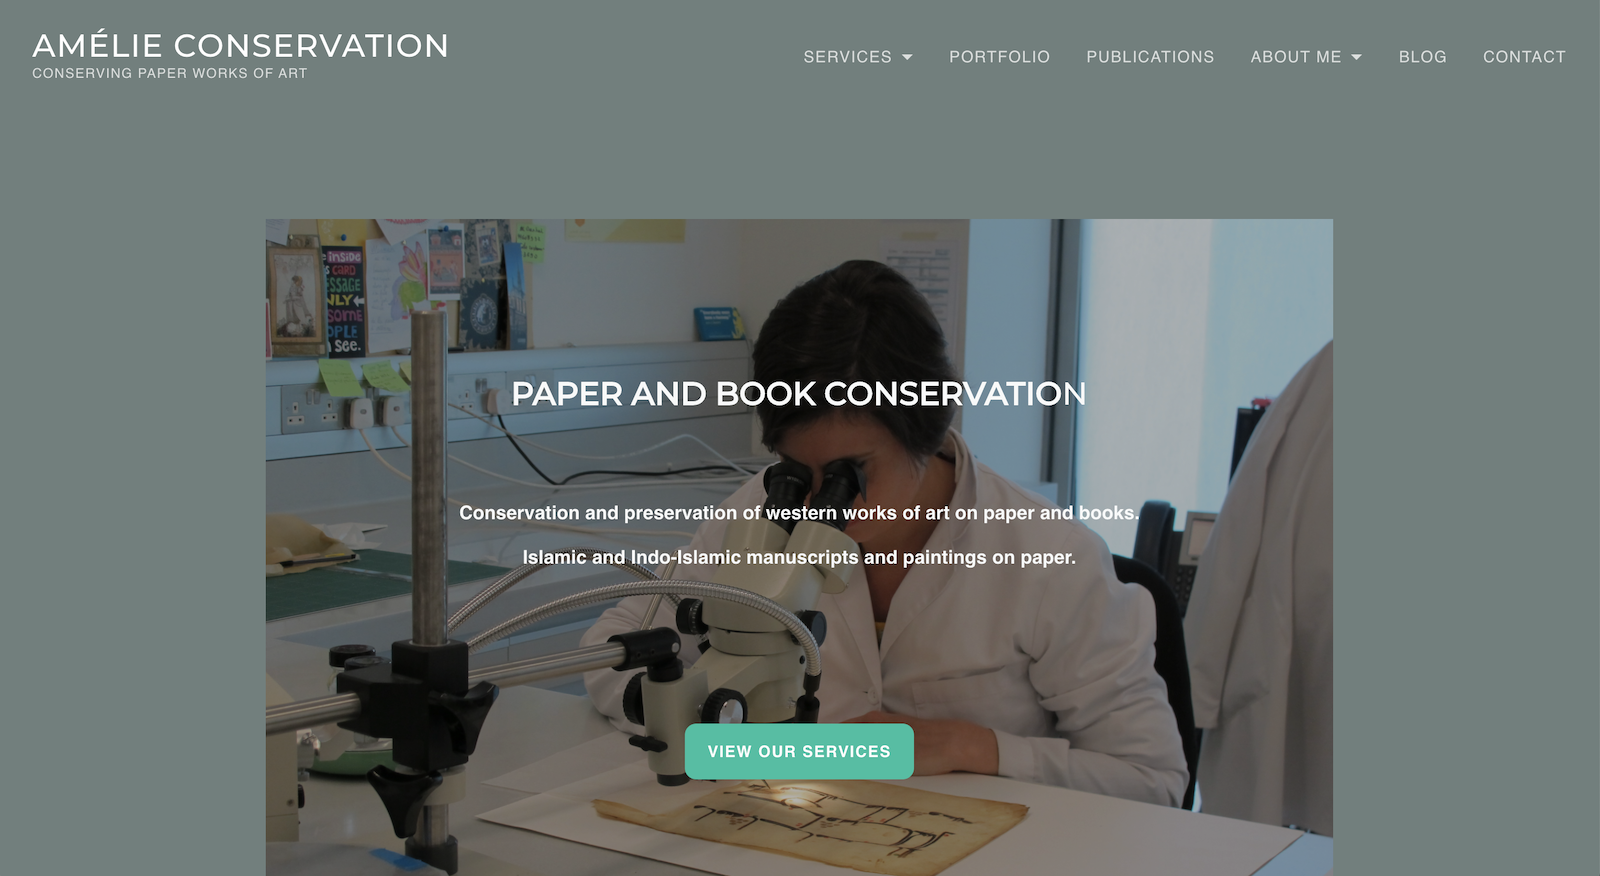 Frontpage of AmelieConservation.com